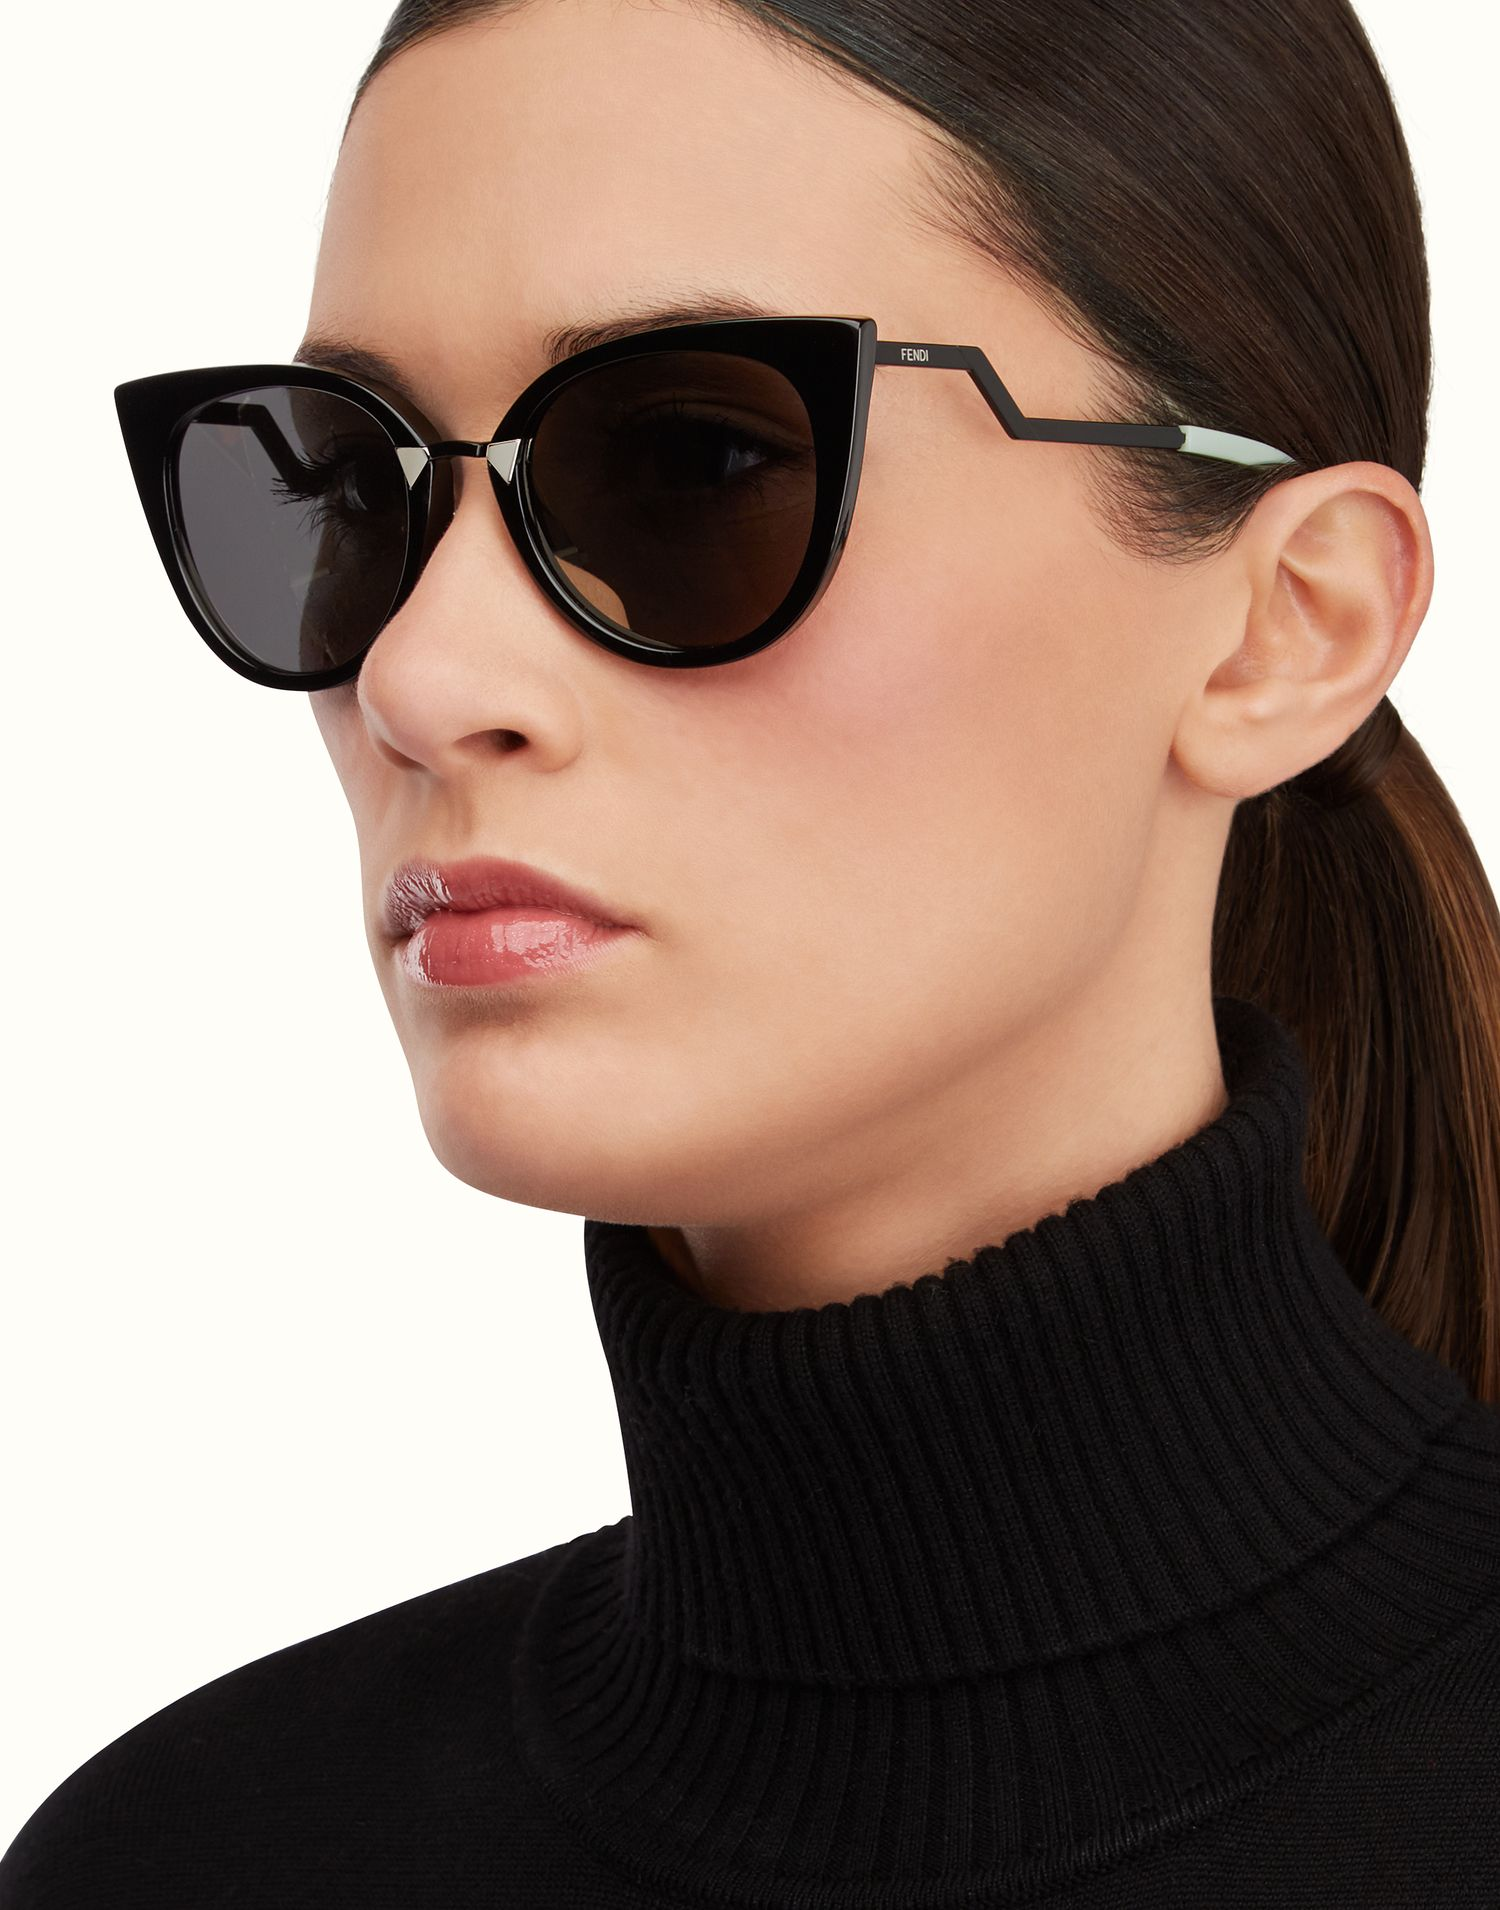 39666bfff943 Fendi Cat Eye Sungalsses Fendi Sunglasses 2017